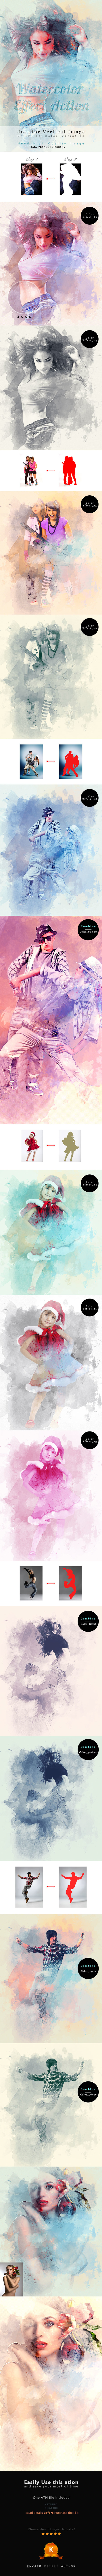 Watercolor Effect Action - Photo Effects Actions